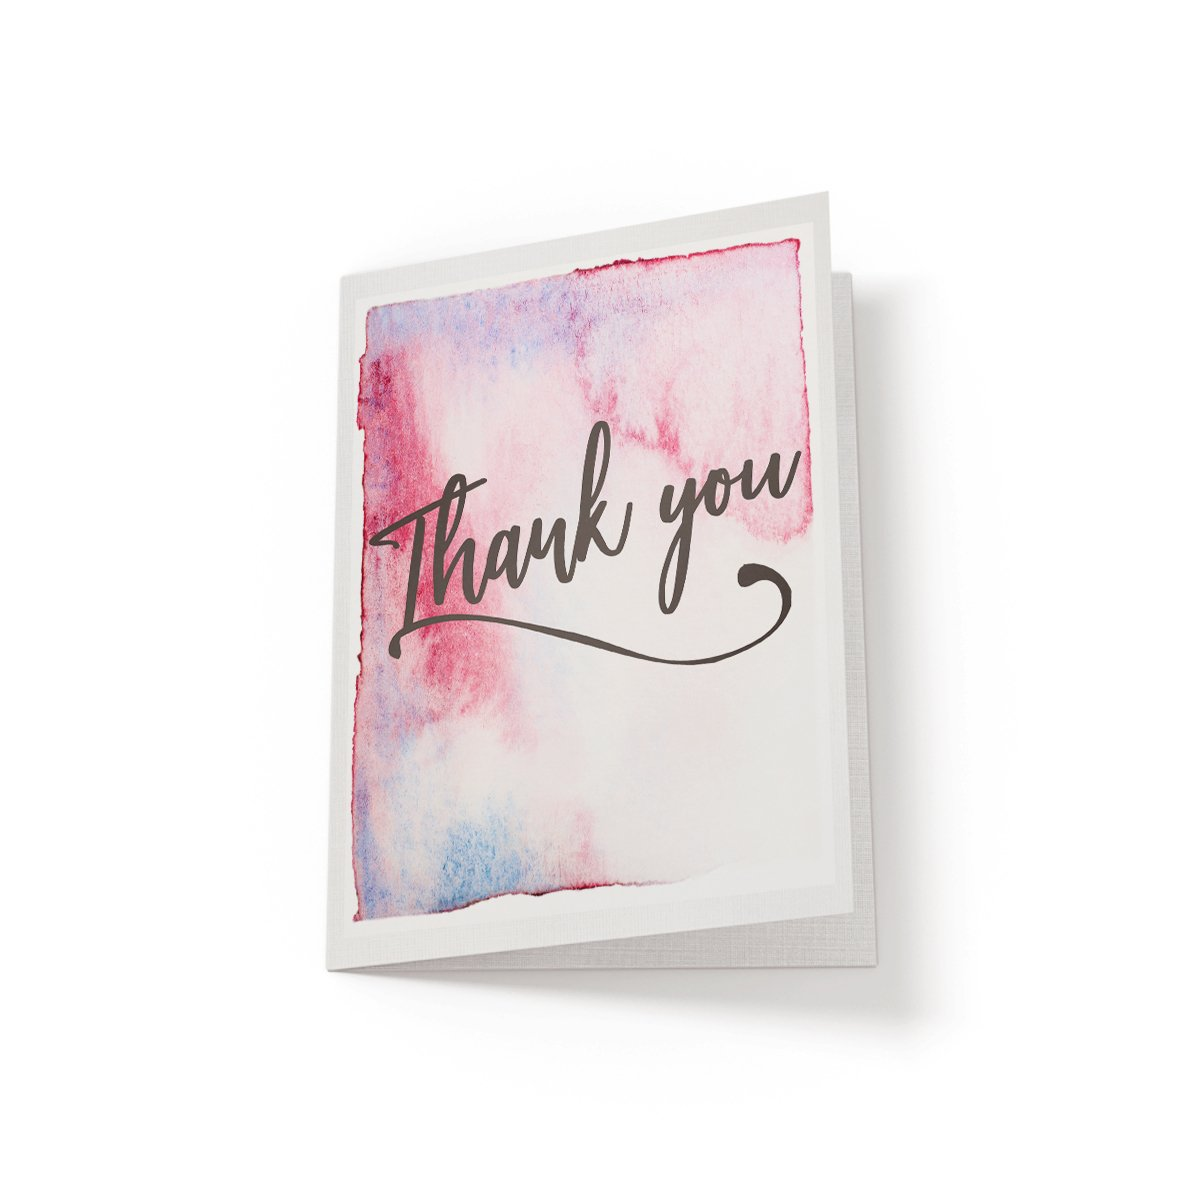 Thank you - Greeting Card - Netties Expressions